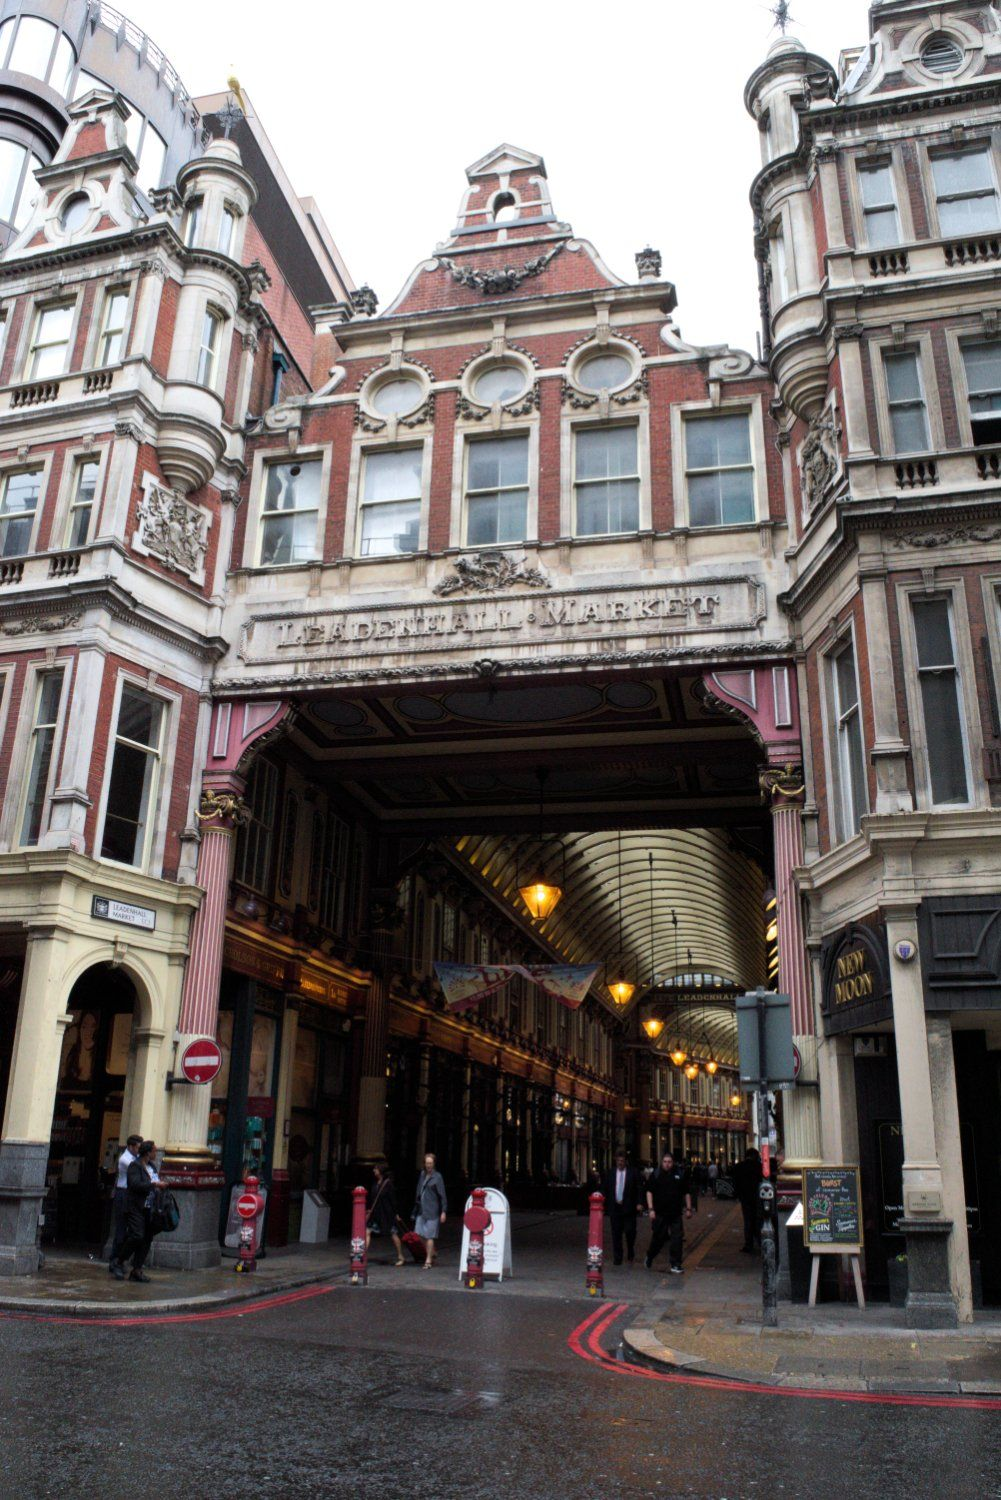 Leadenhall Market, Gracechurch Street. London